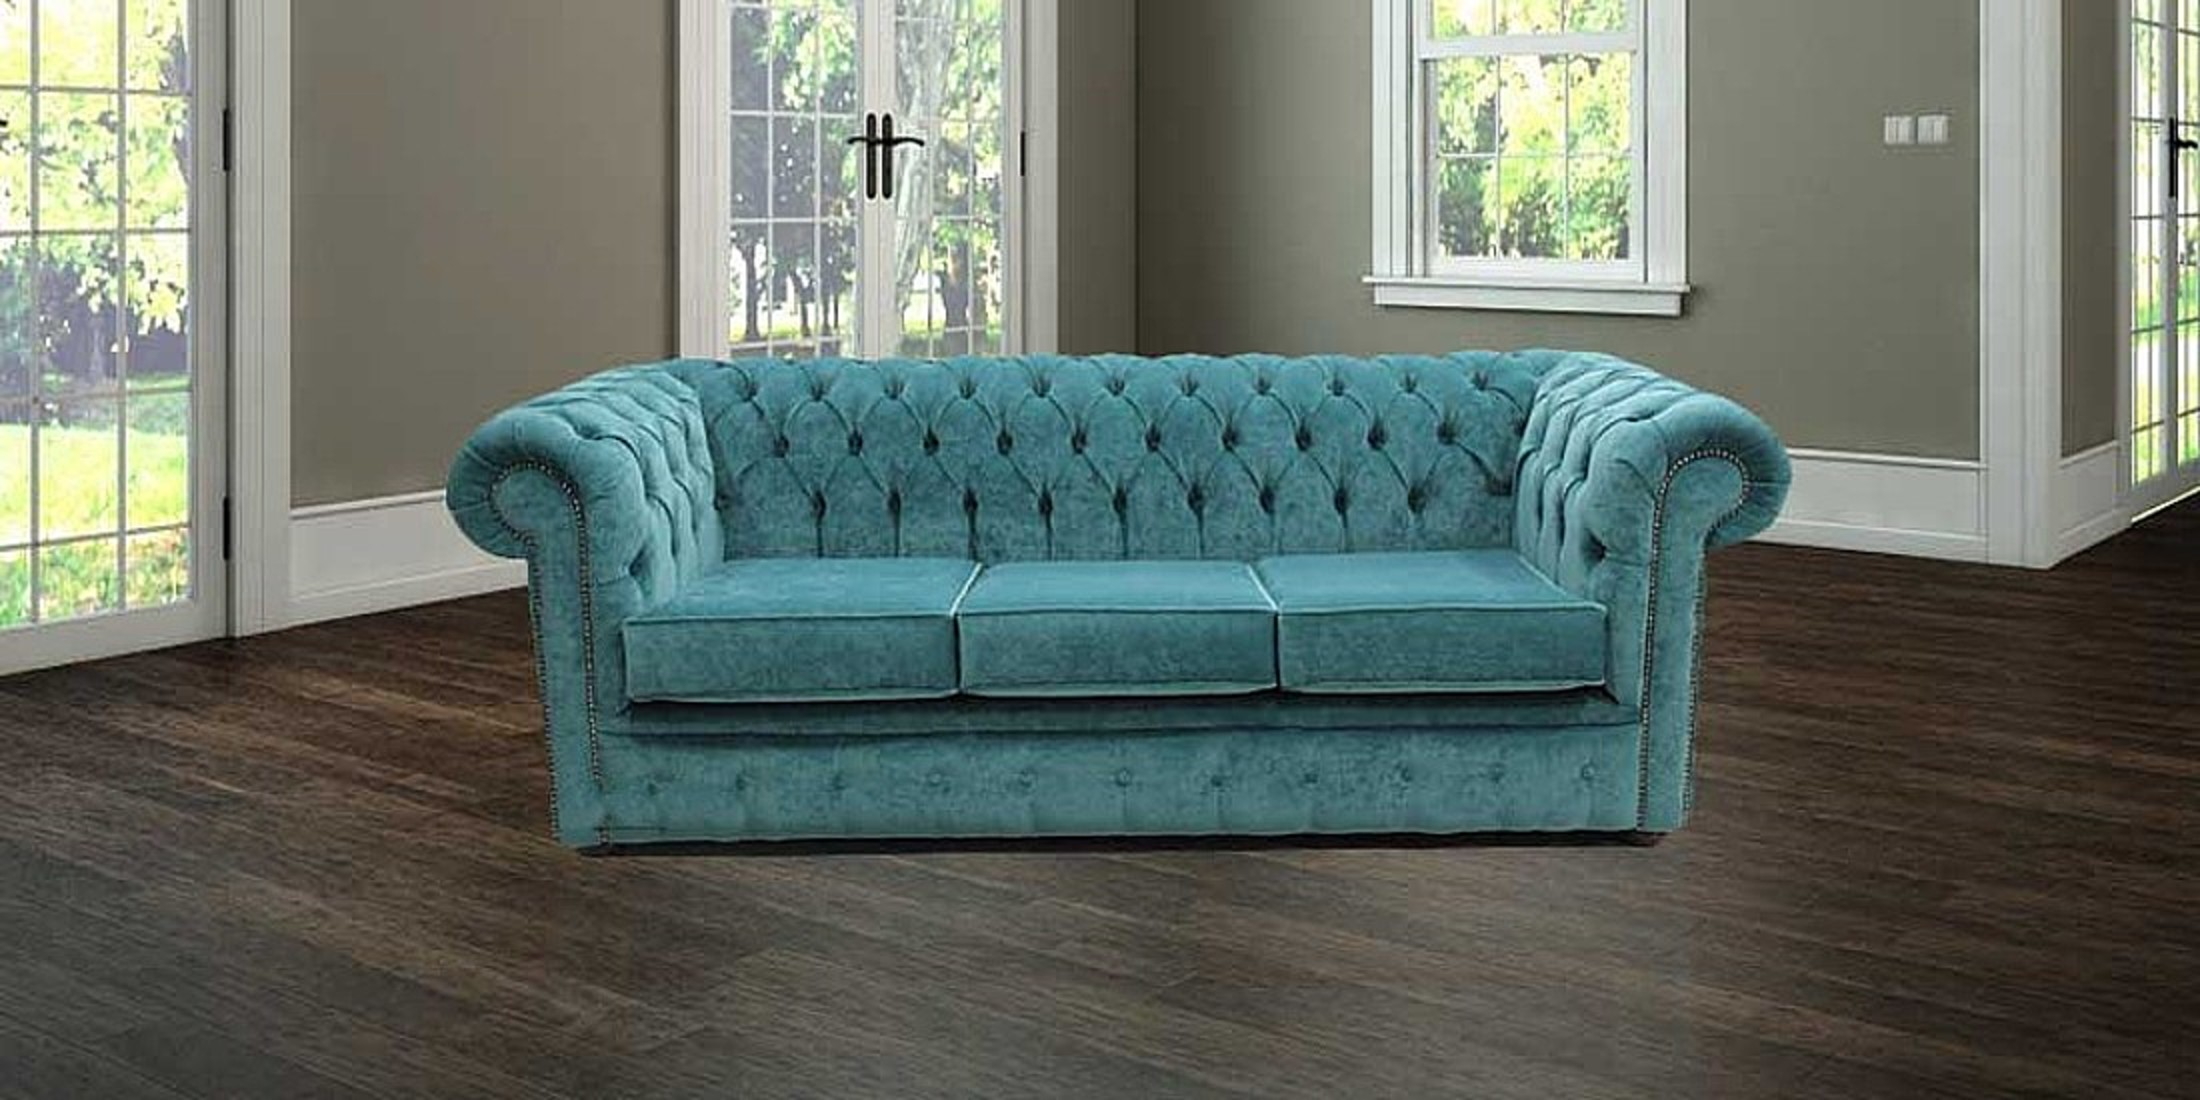 Chesterfield 3 Seater Settee Pimlico Teal Blue Sofa Offer Lo